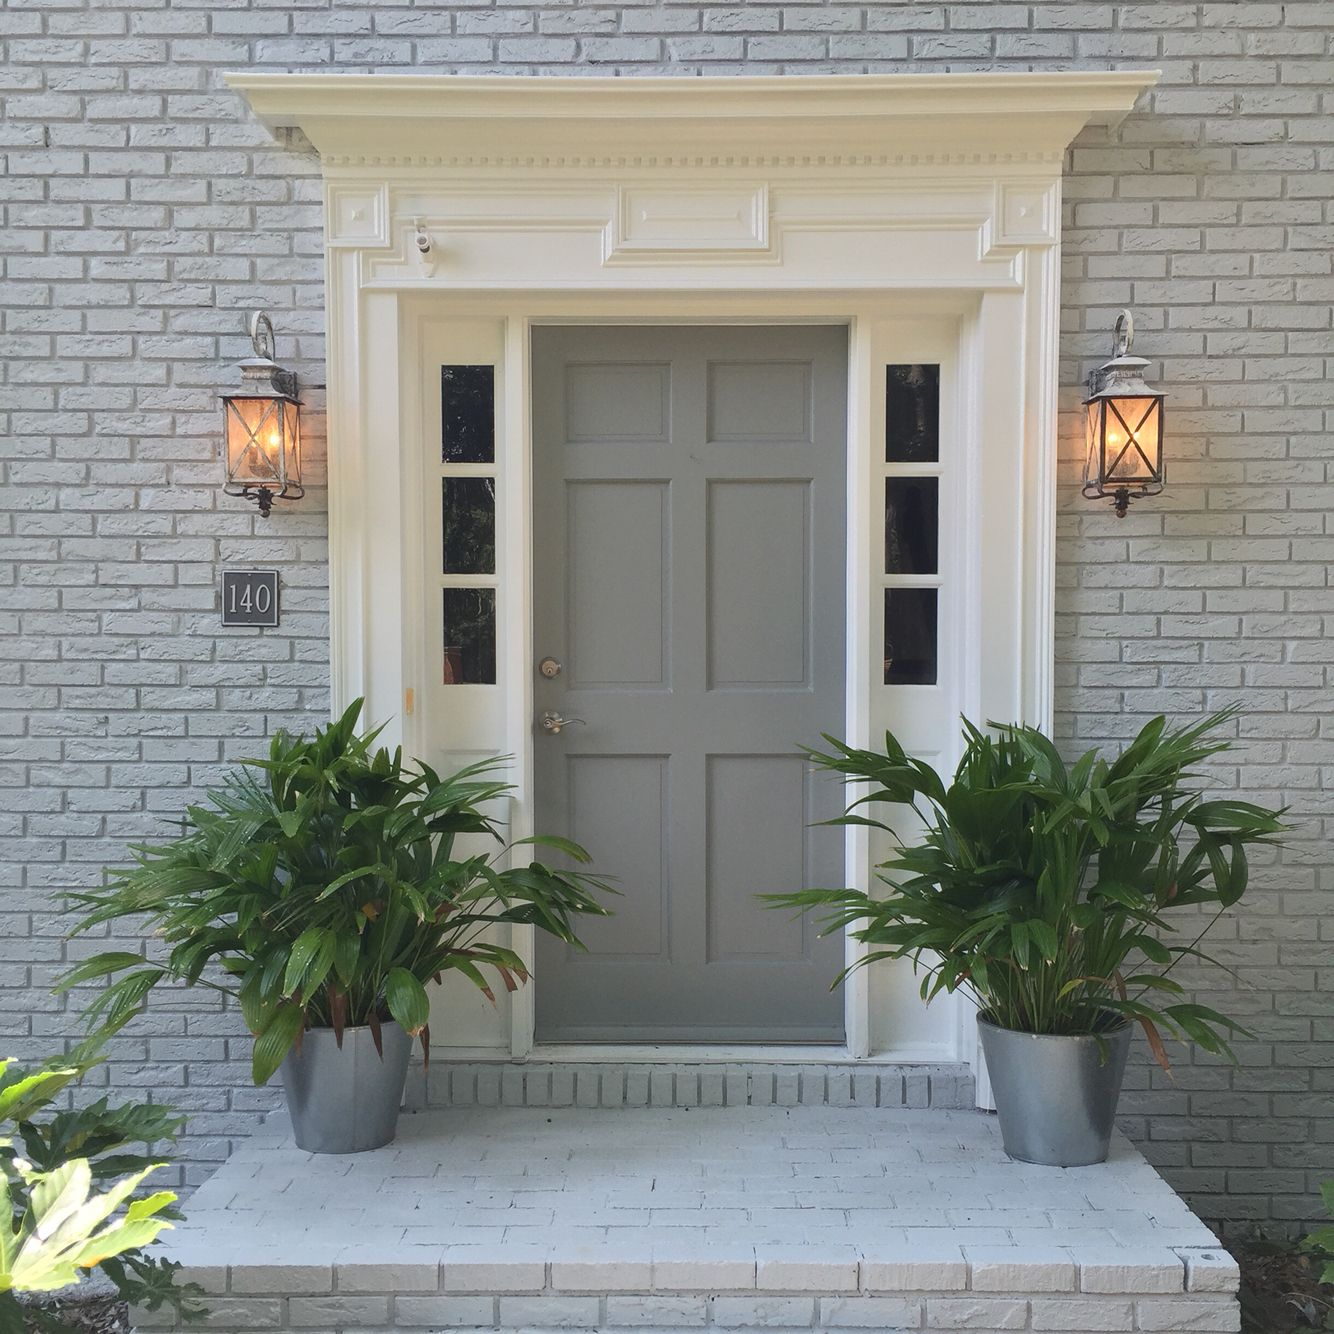 New house exterior color scheme sherwin williams gray Front door color ideas for beige house